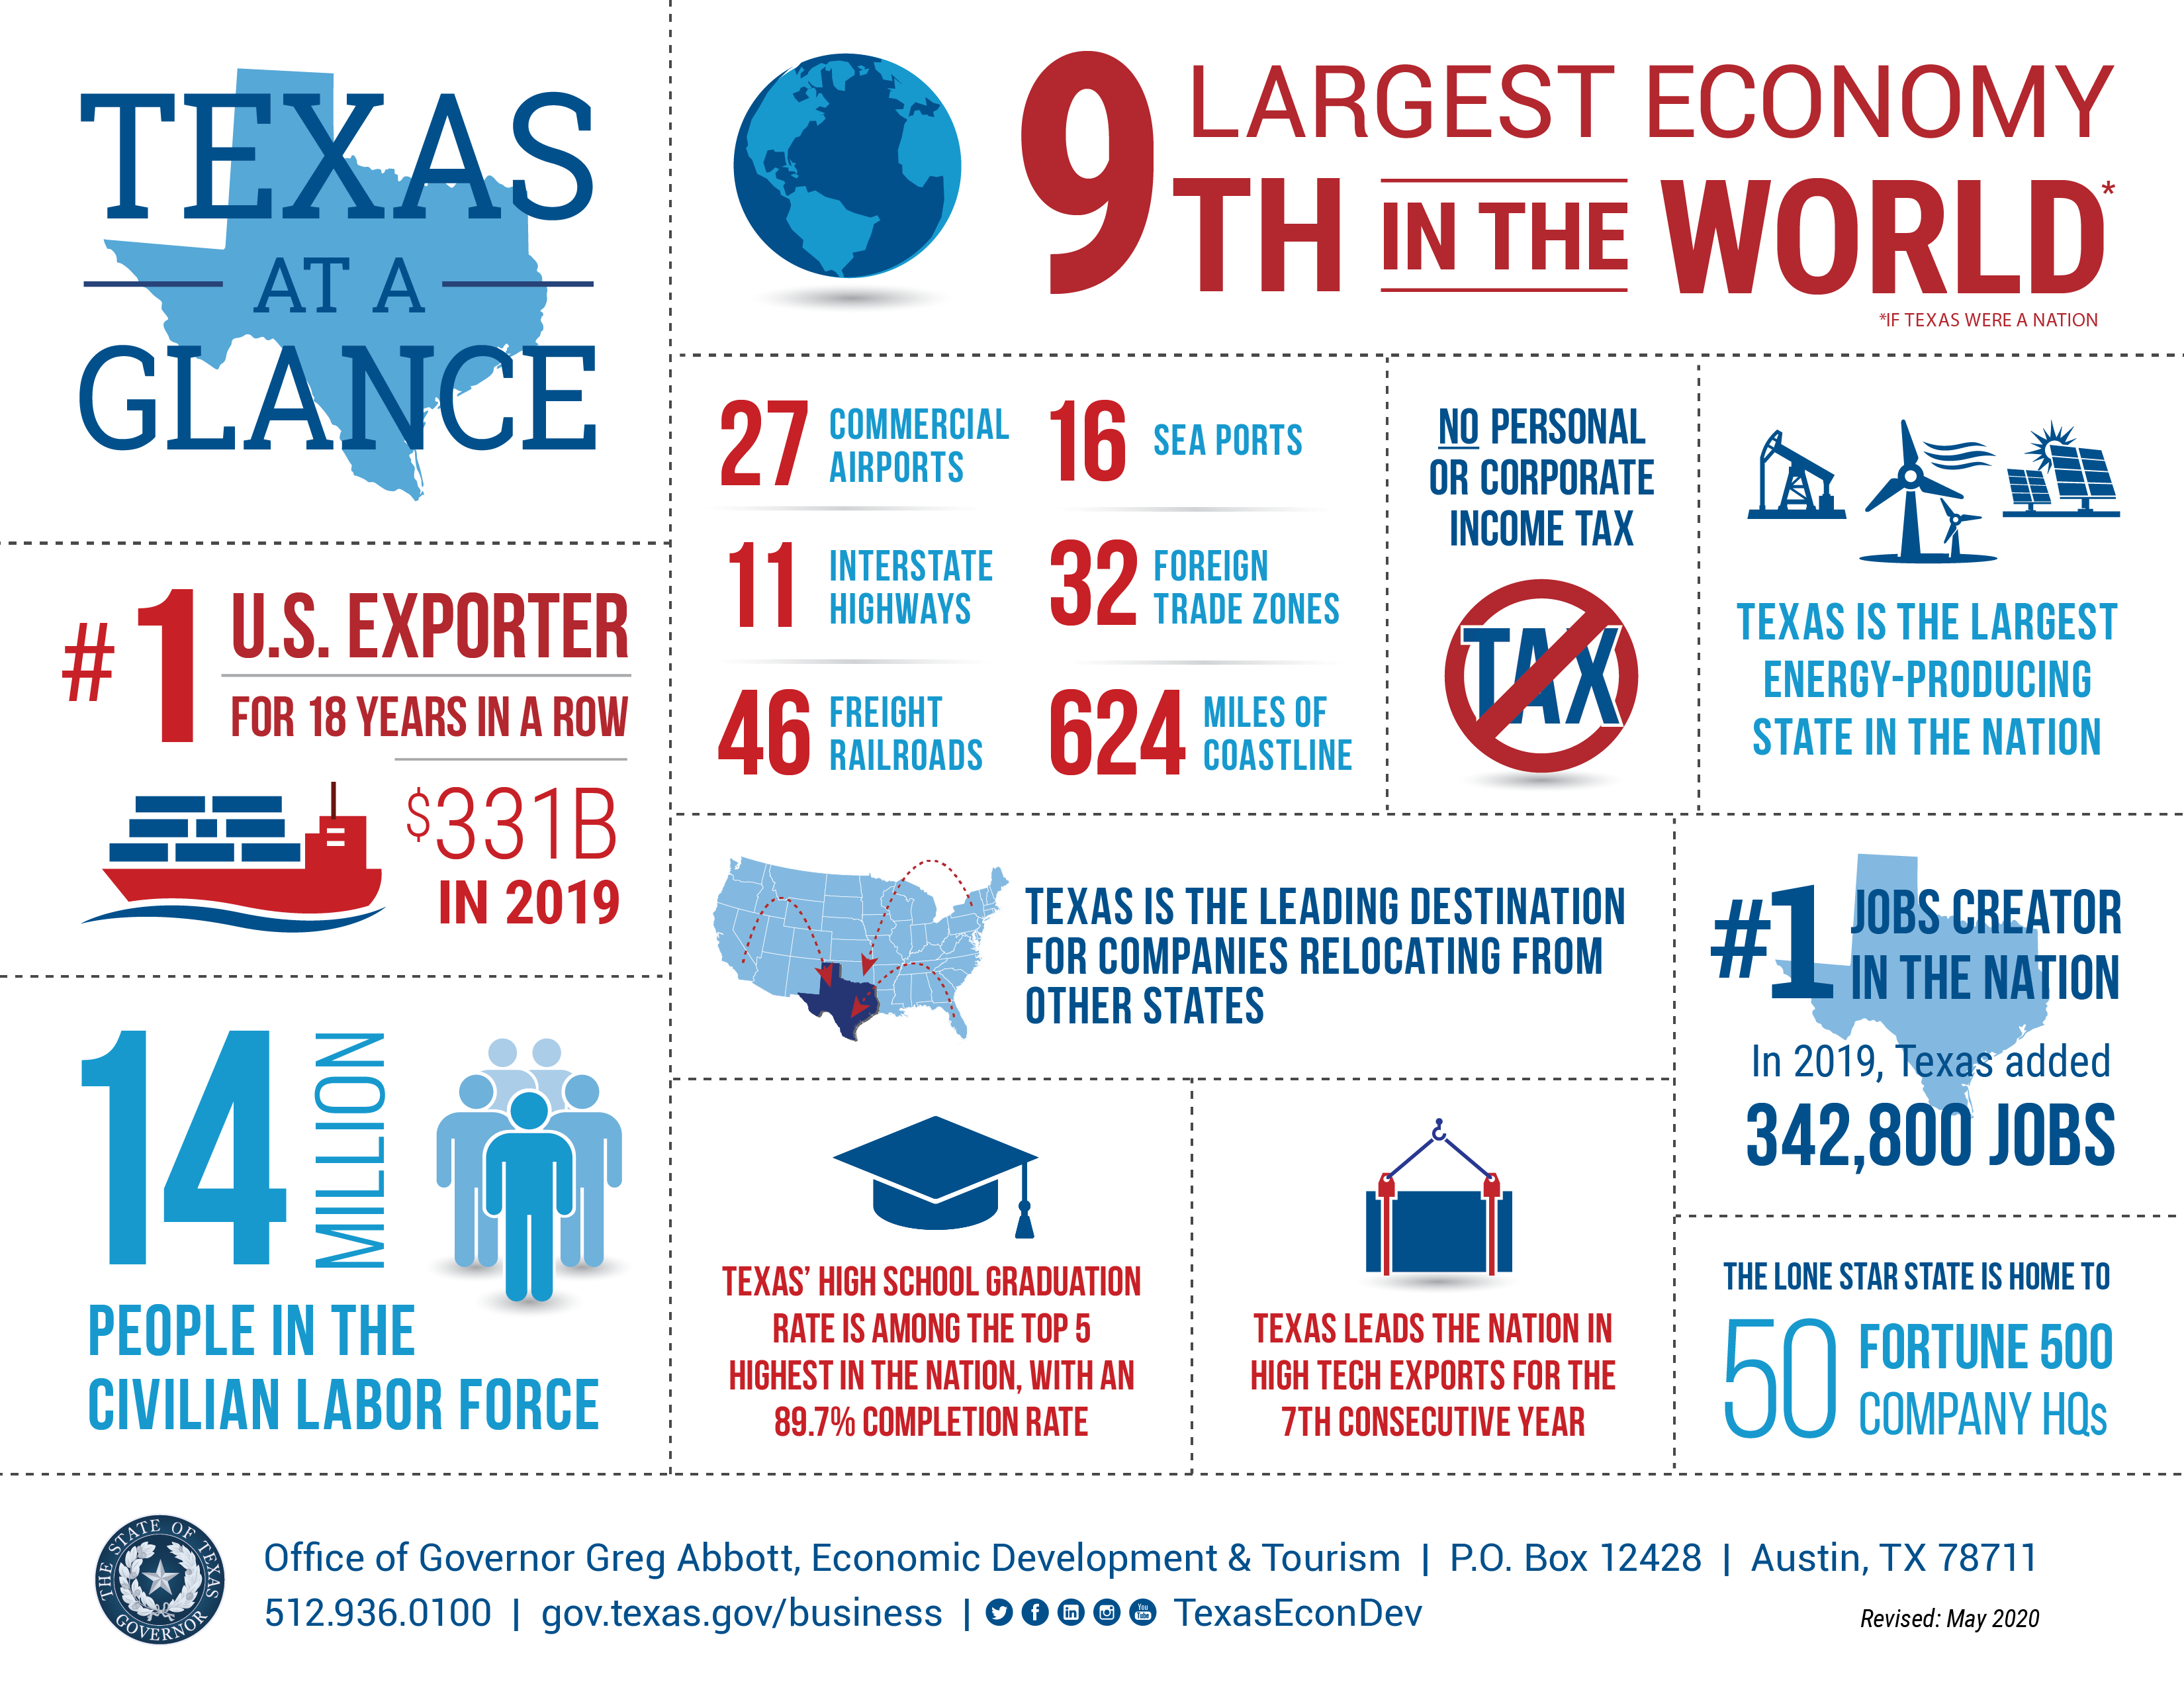 Texas at a glance info Graphics. Texas the 9th largest Economy in the world